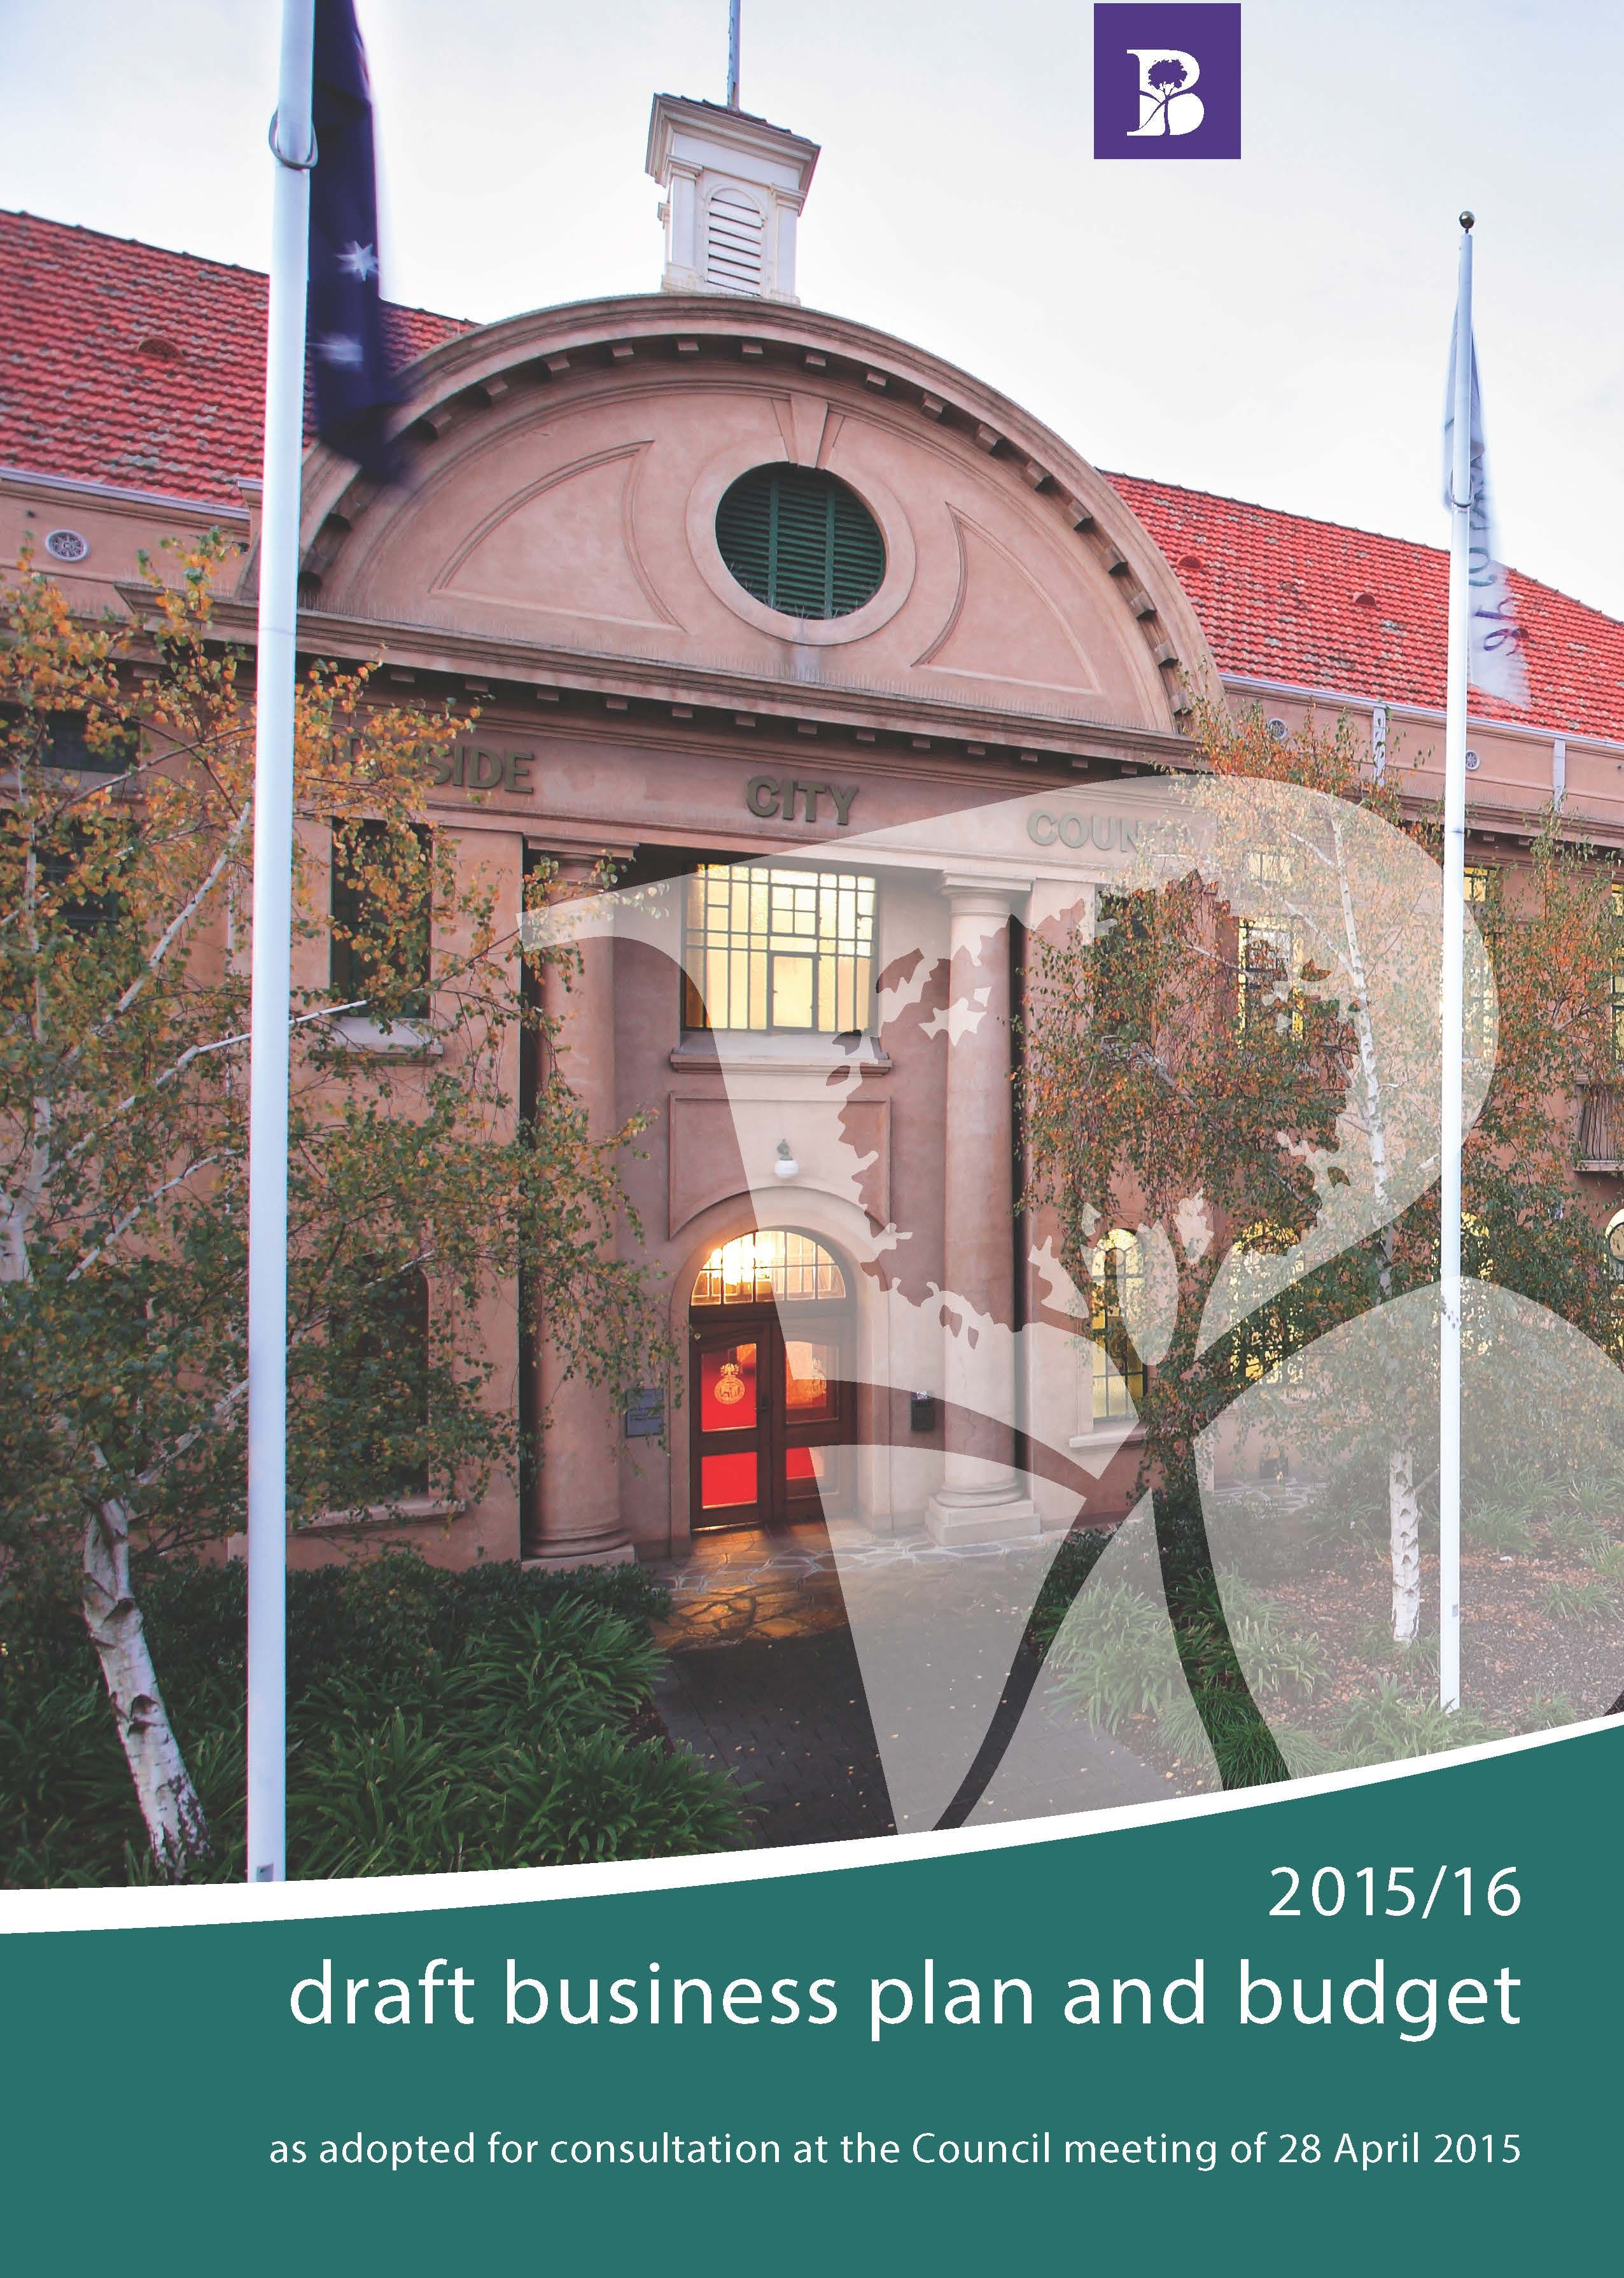 Cover 2015/16 Draft Business Plan and Budget